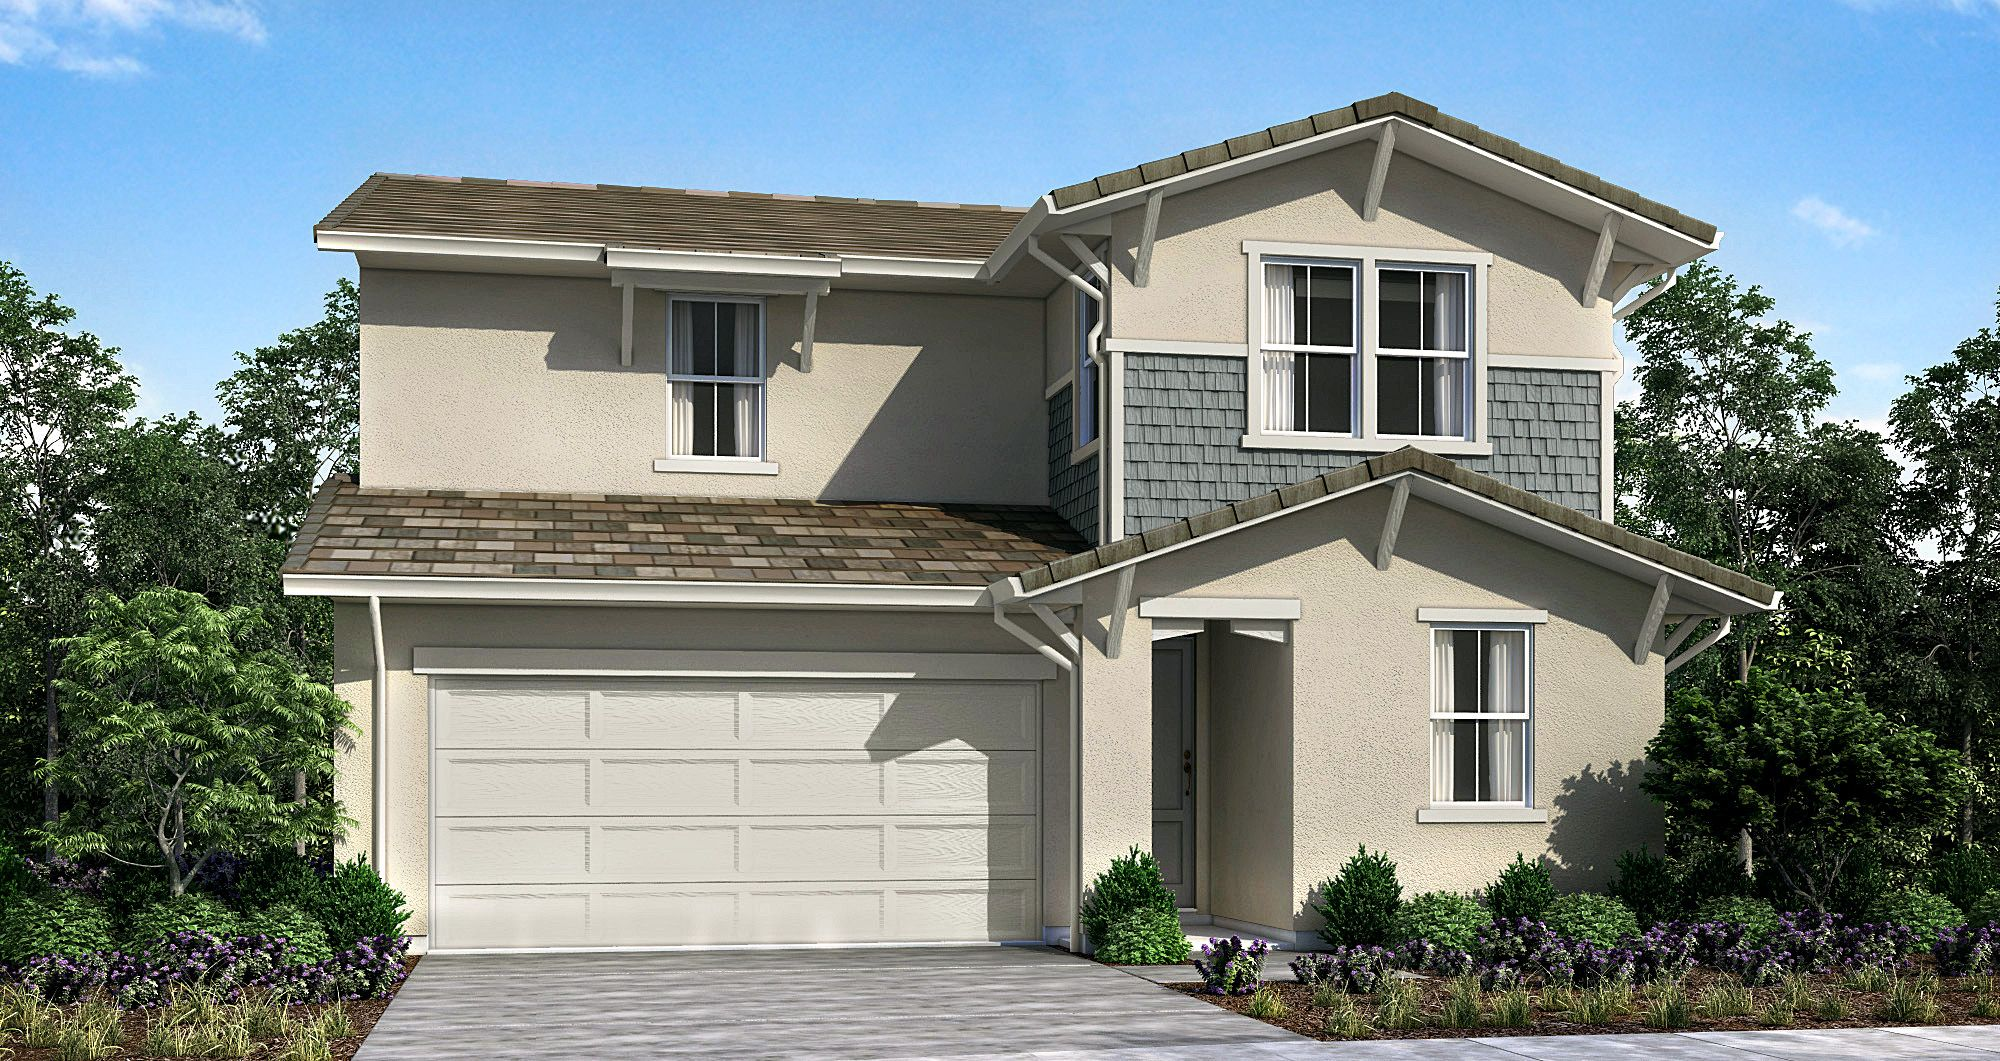 95757 new homes for sale elk grove california